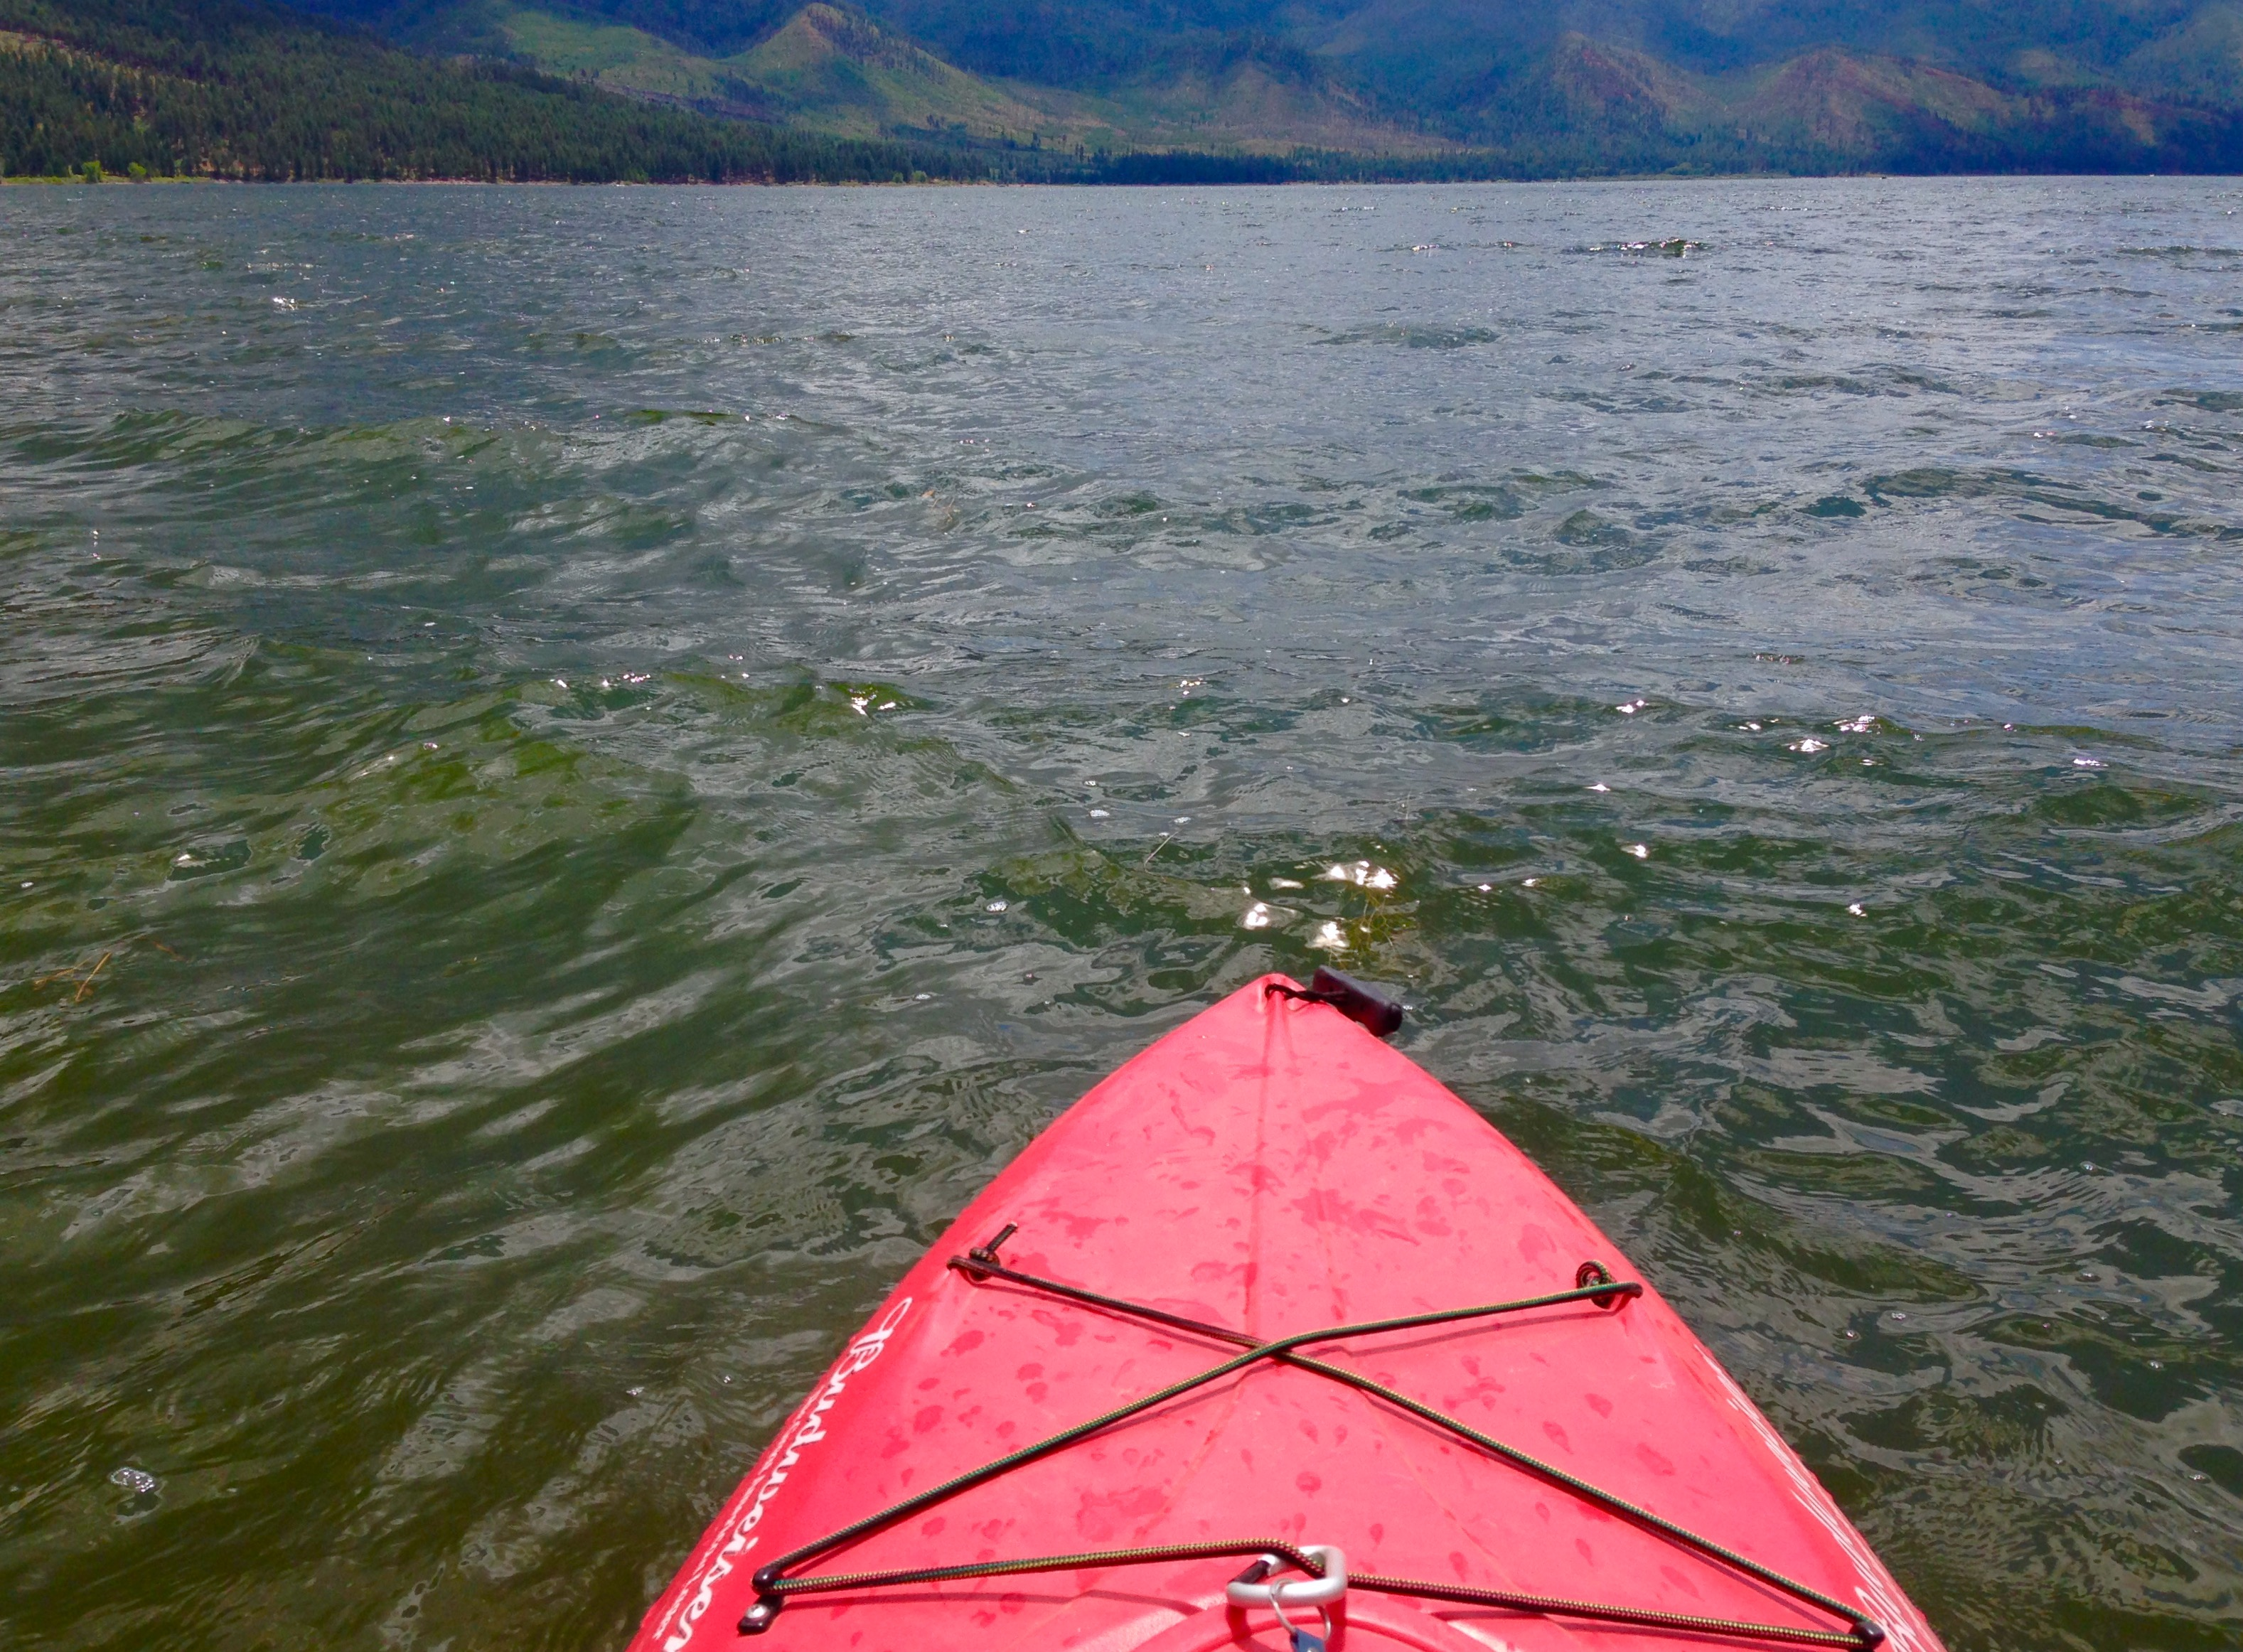 Kayaking Vallecito Reservoir. Photographer's point of view. Red kayak.